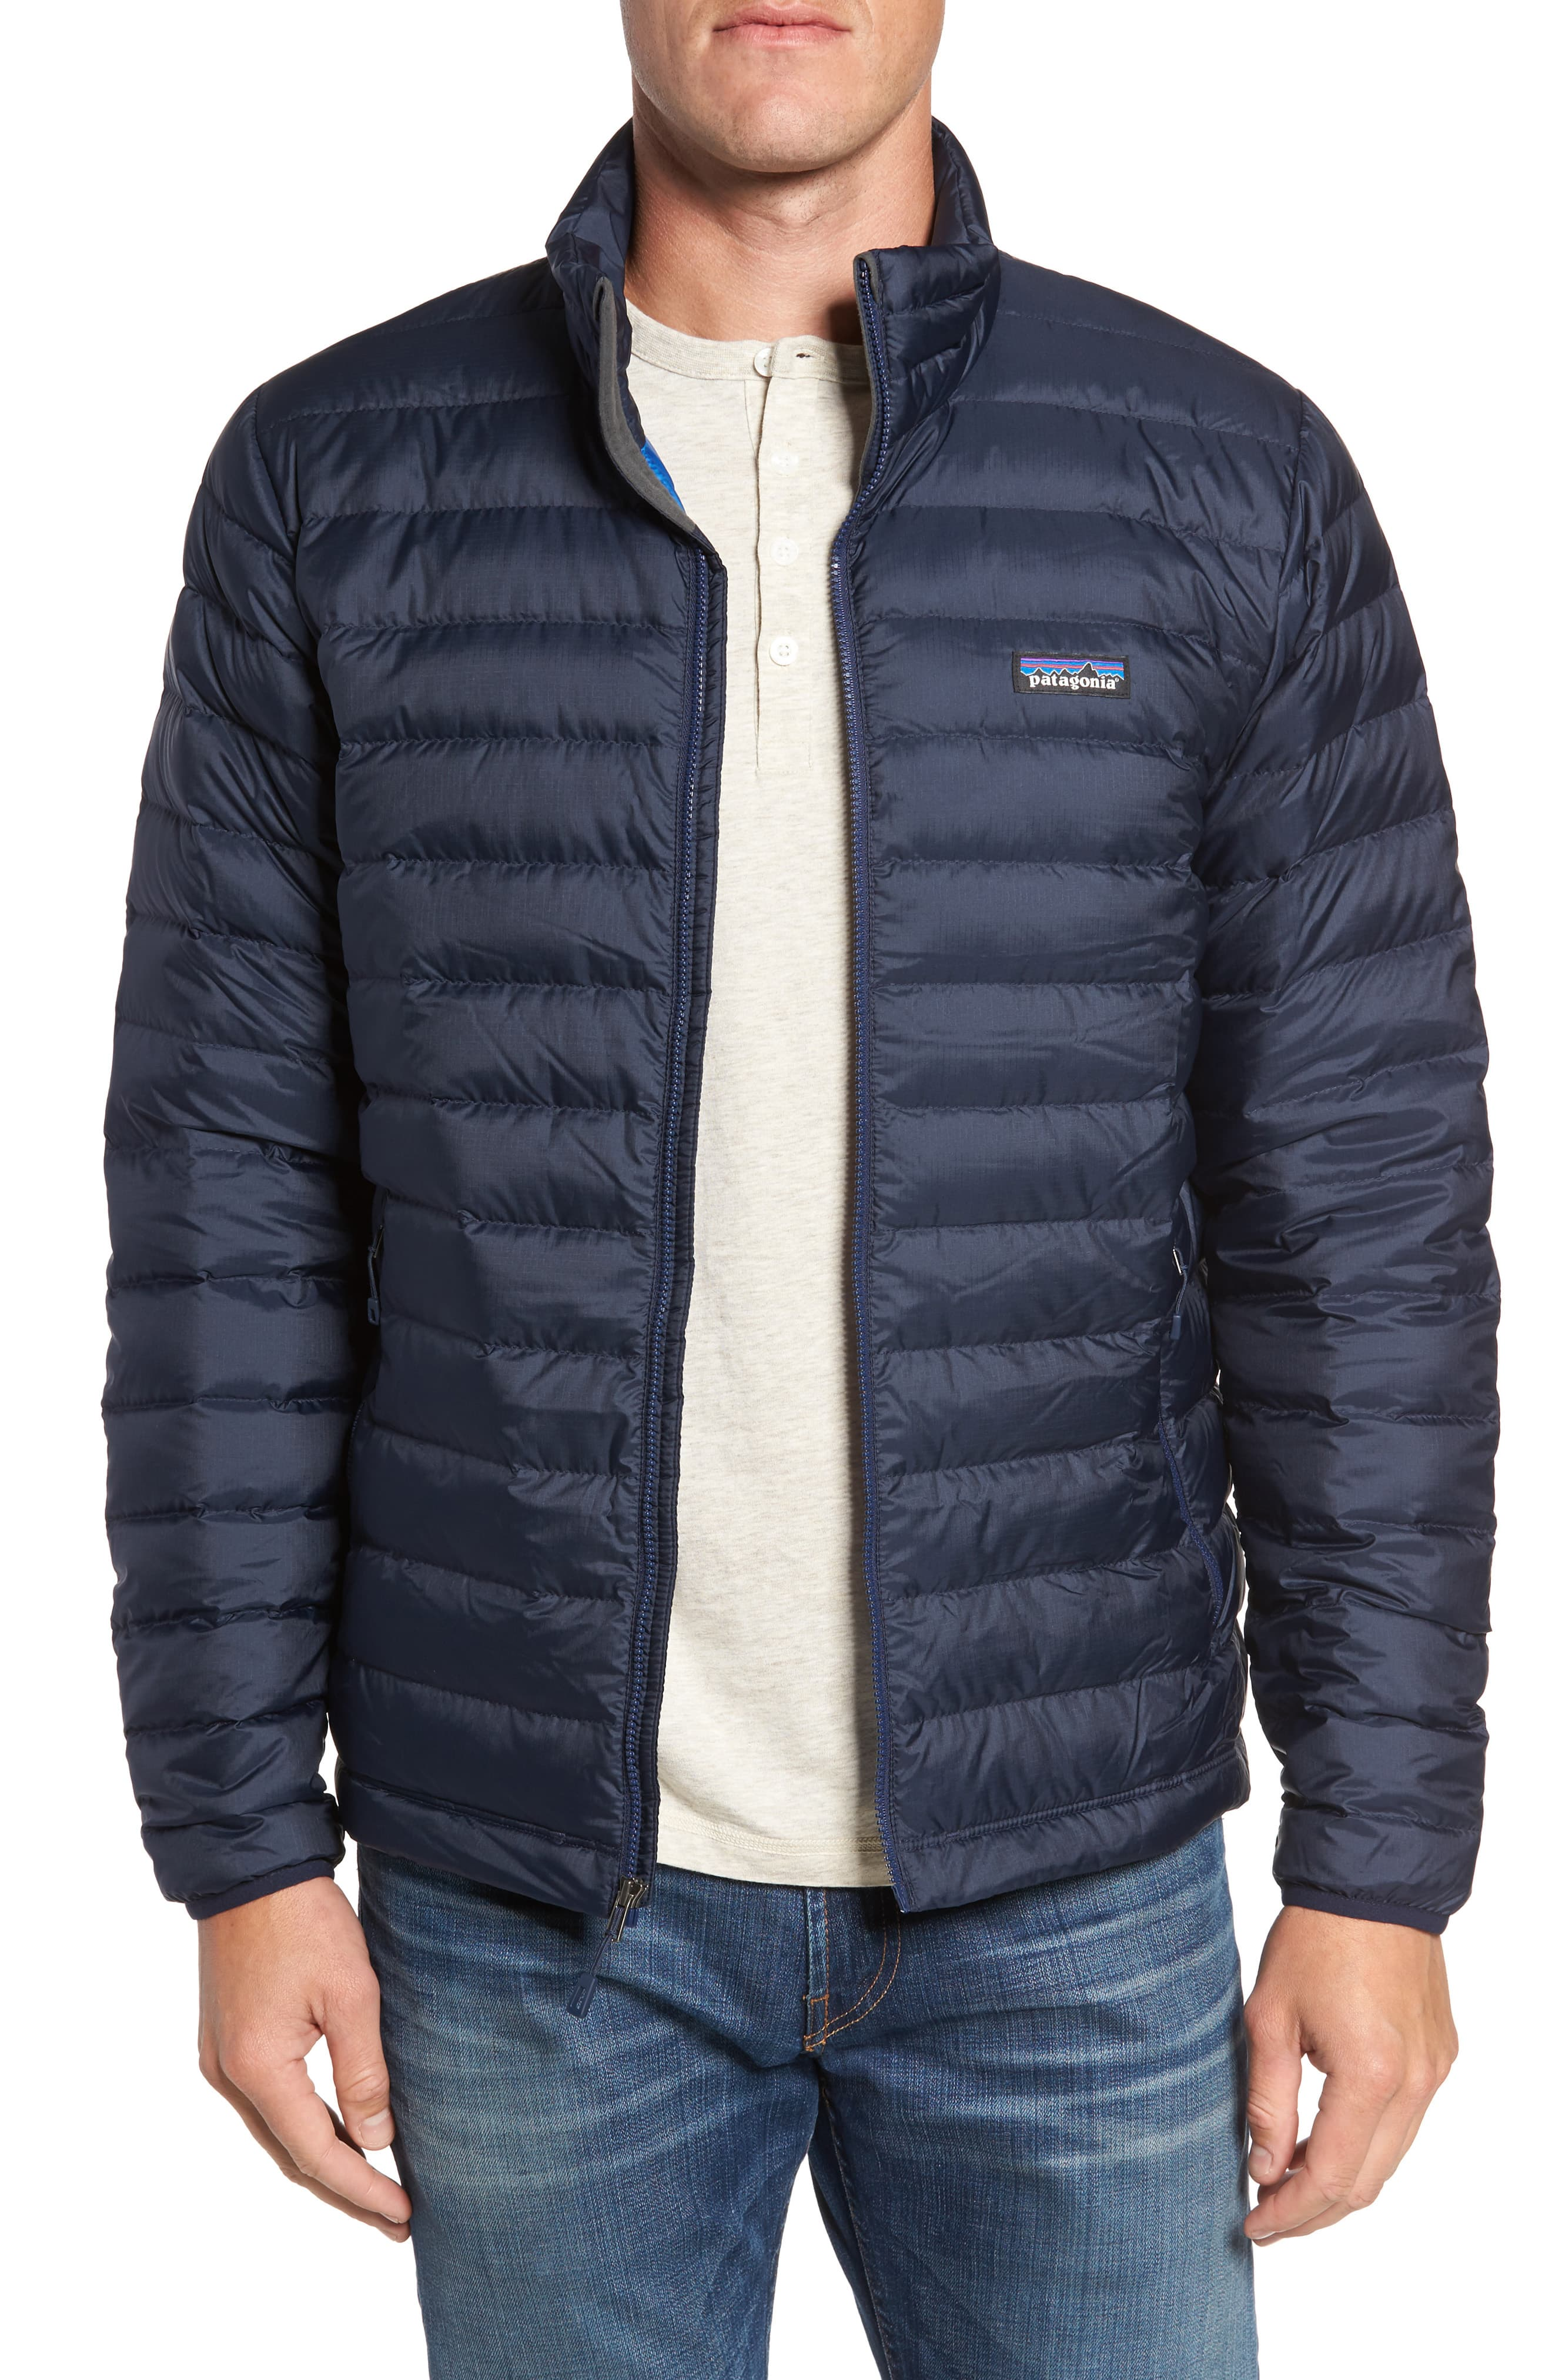 Men S Patagonia Water Repellent Down Jacket Size Small Blue Mens Clothing Styles Patagonia Mens Bomber Jacket Men [ 4048 x 2640 Pixel ]